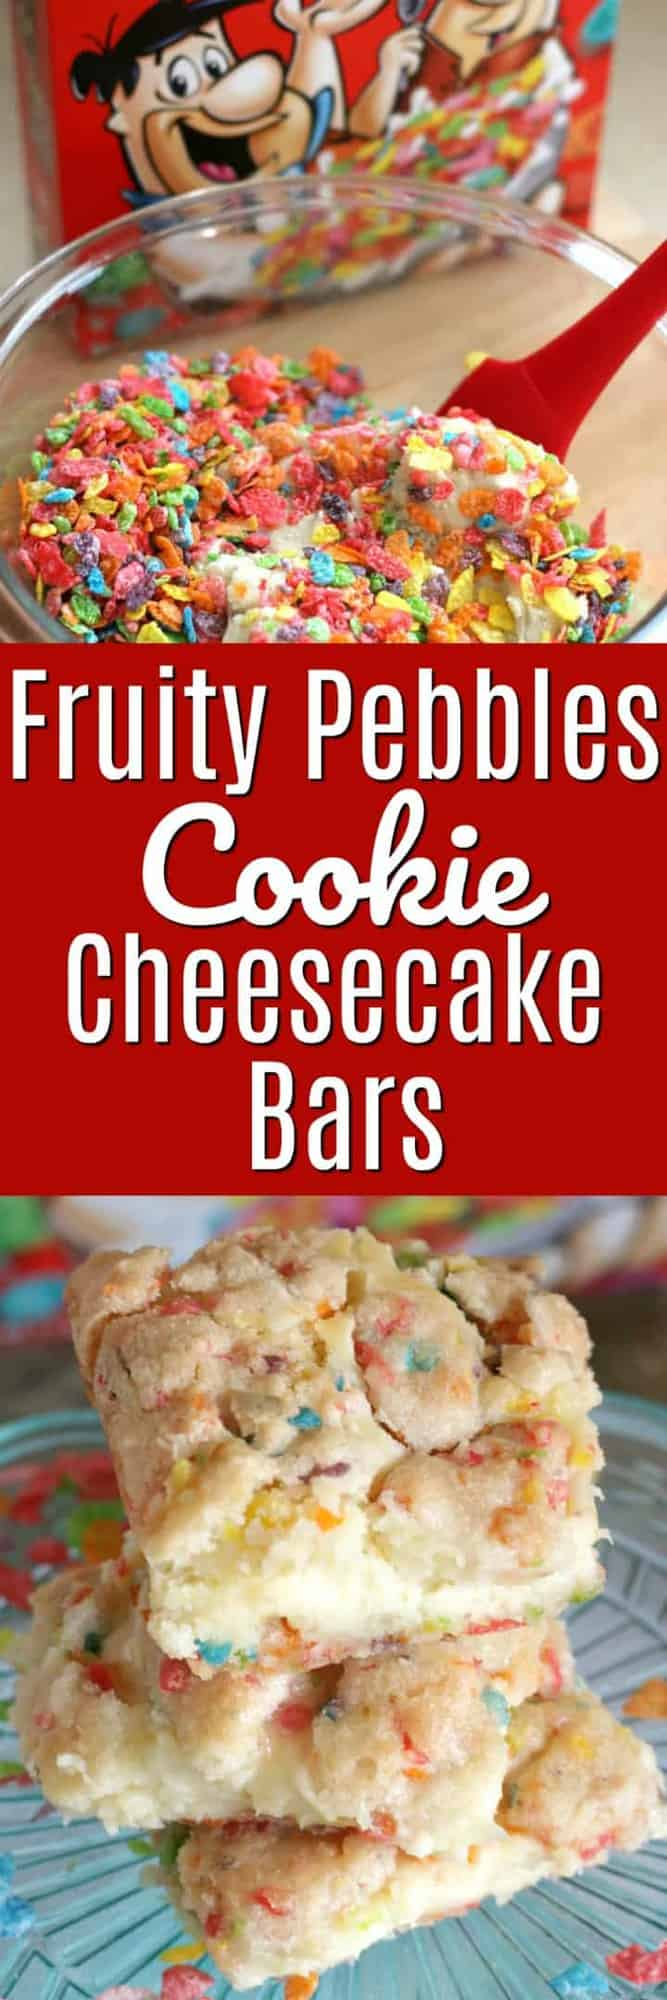 Fruity Pebbles Cookie Cheesecake Bars are not only fun to eat, they are easy to make with only 6 simple ingredients!  This ooey-gooey delight is made with a soft, chewy sugar cookie dough that's LOADED with Fruity Pebbles and has a creamy, delicious cream cheese center.